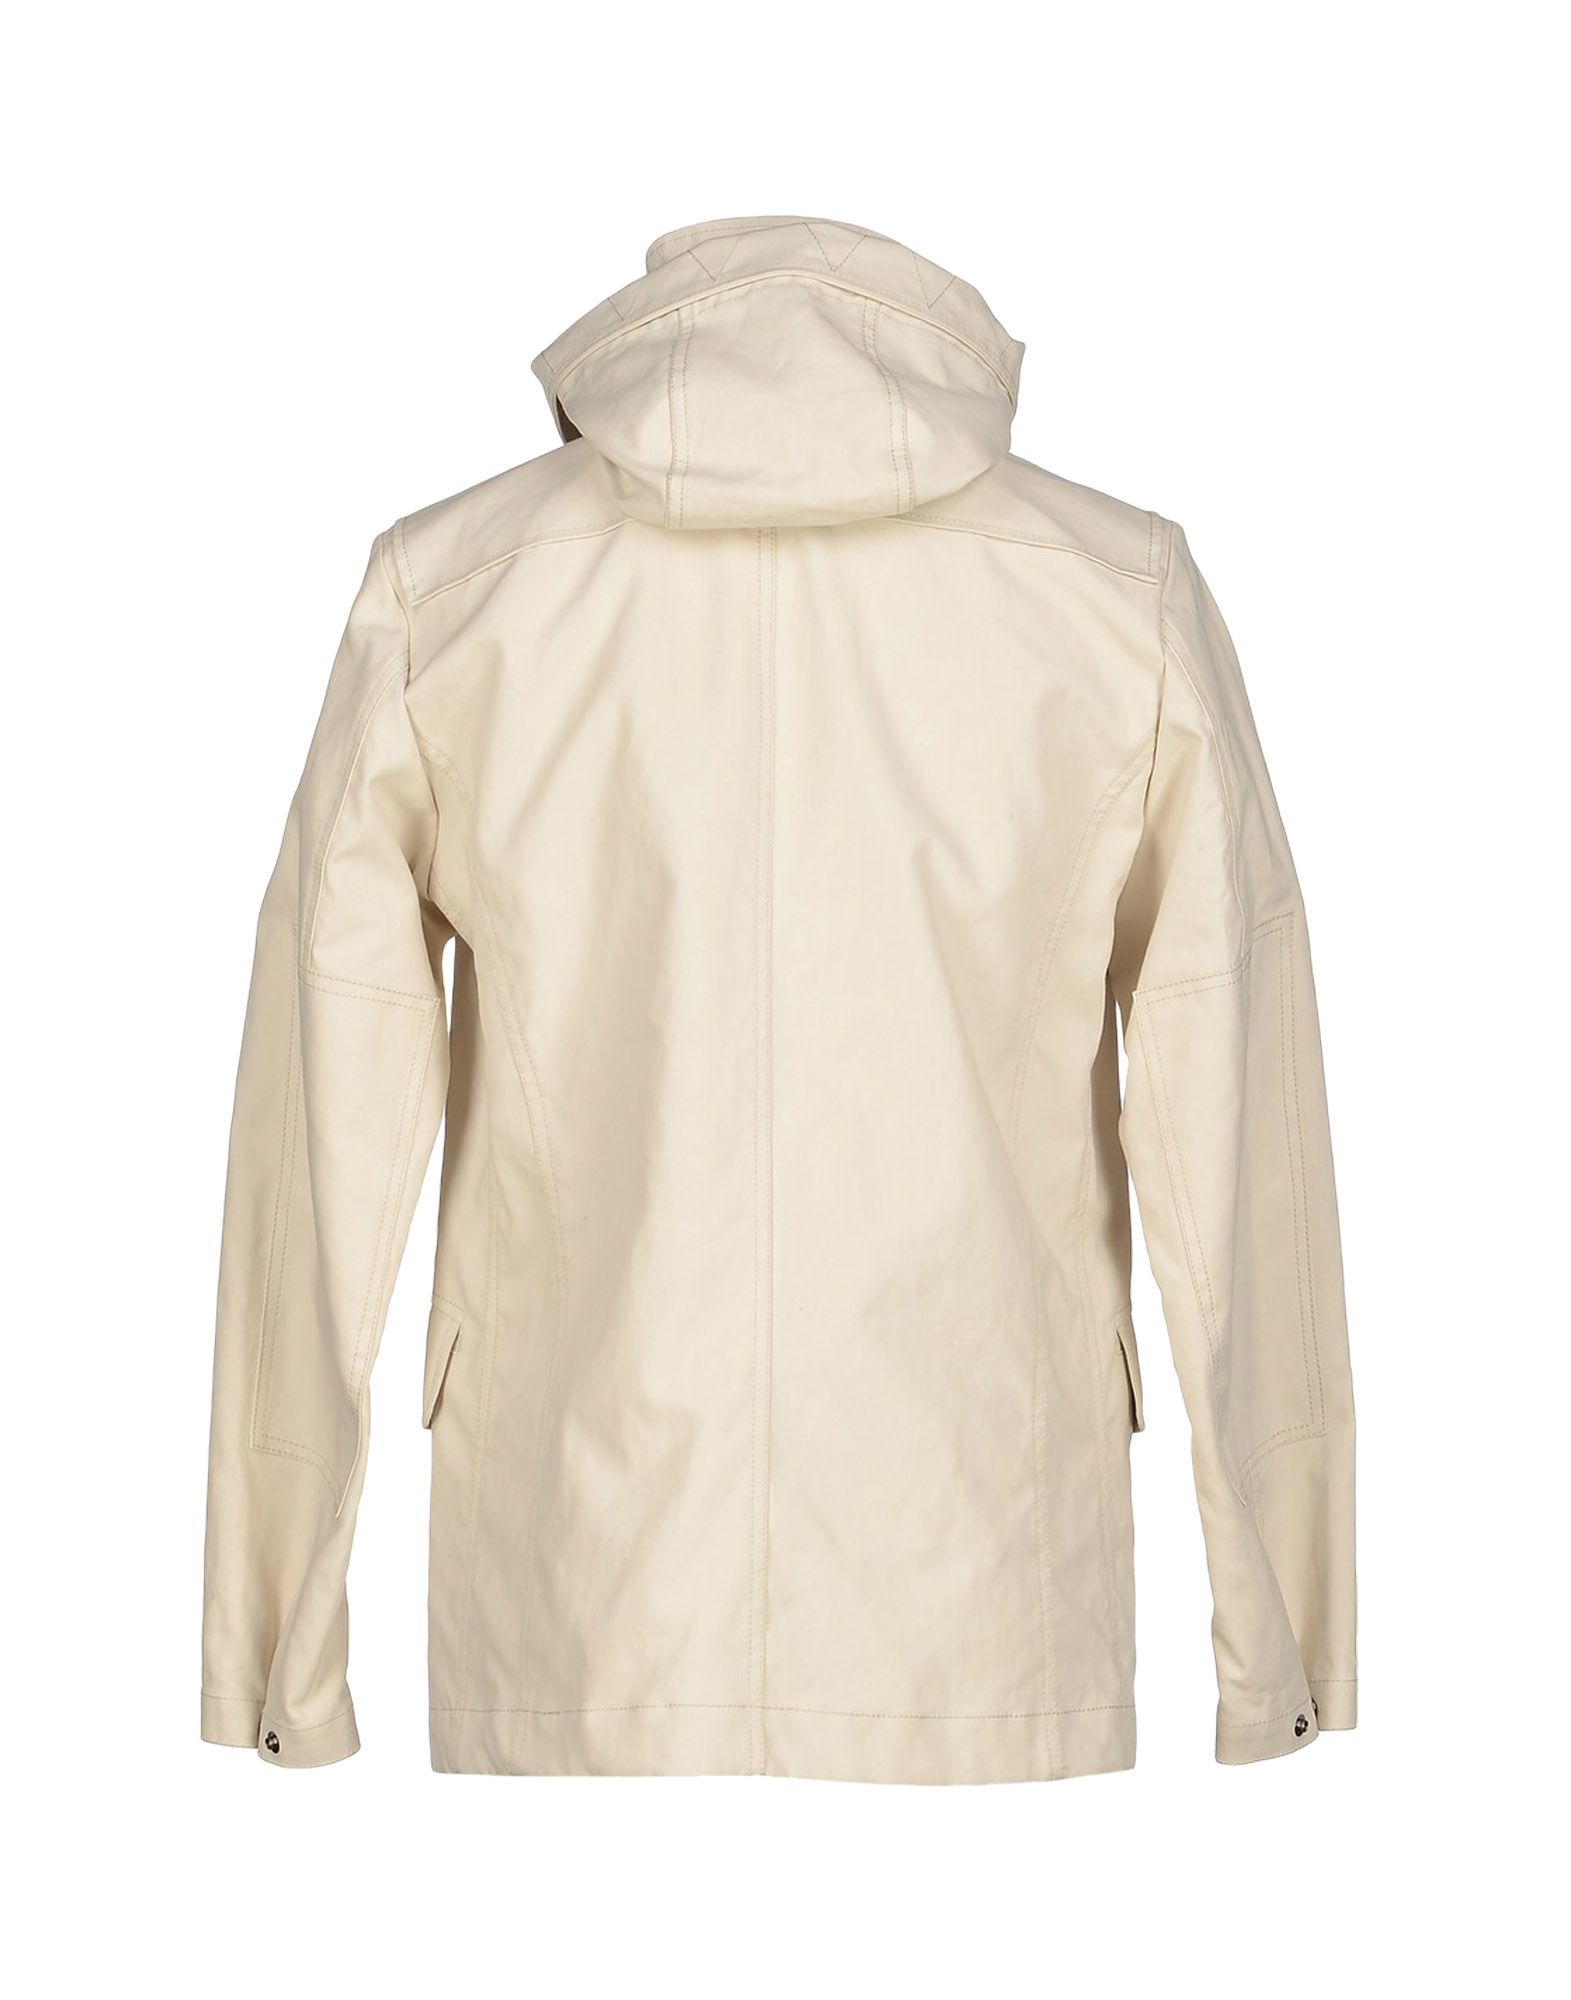 Marina Yachting Cotton Full-length Jacket in Ivory (White) for Men